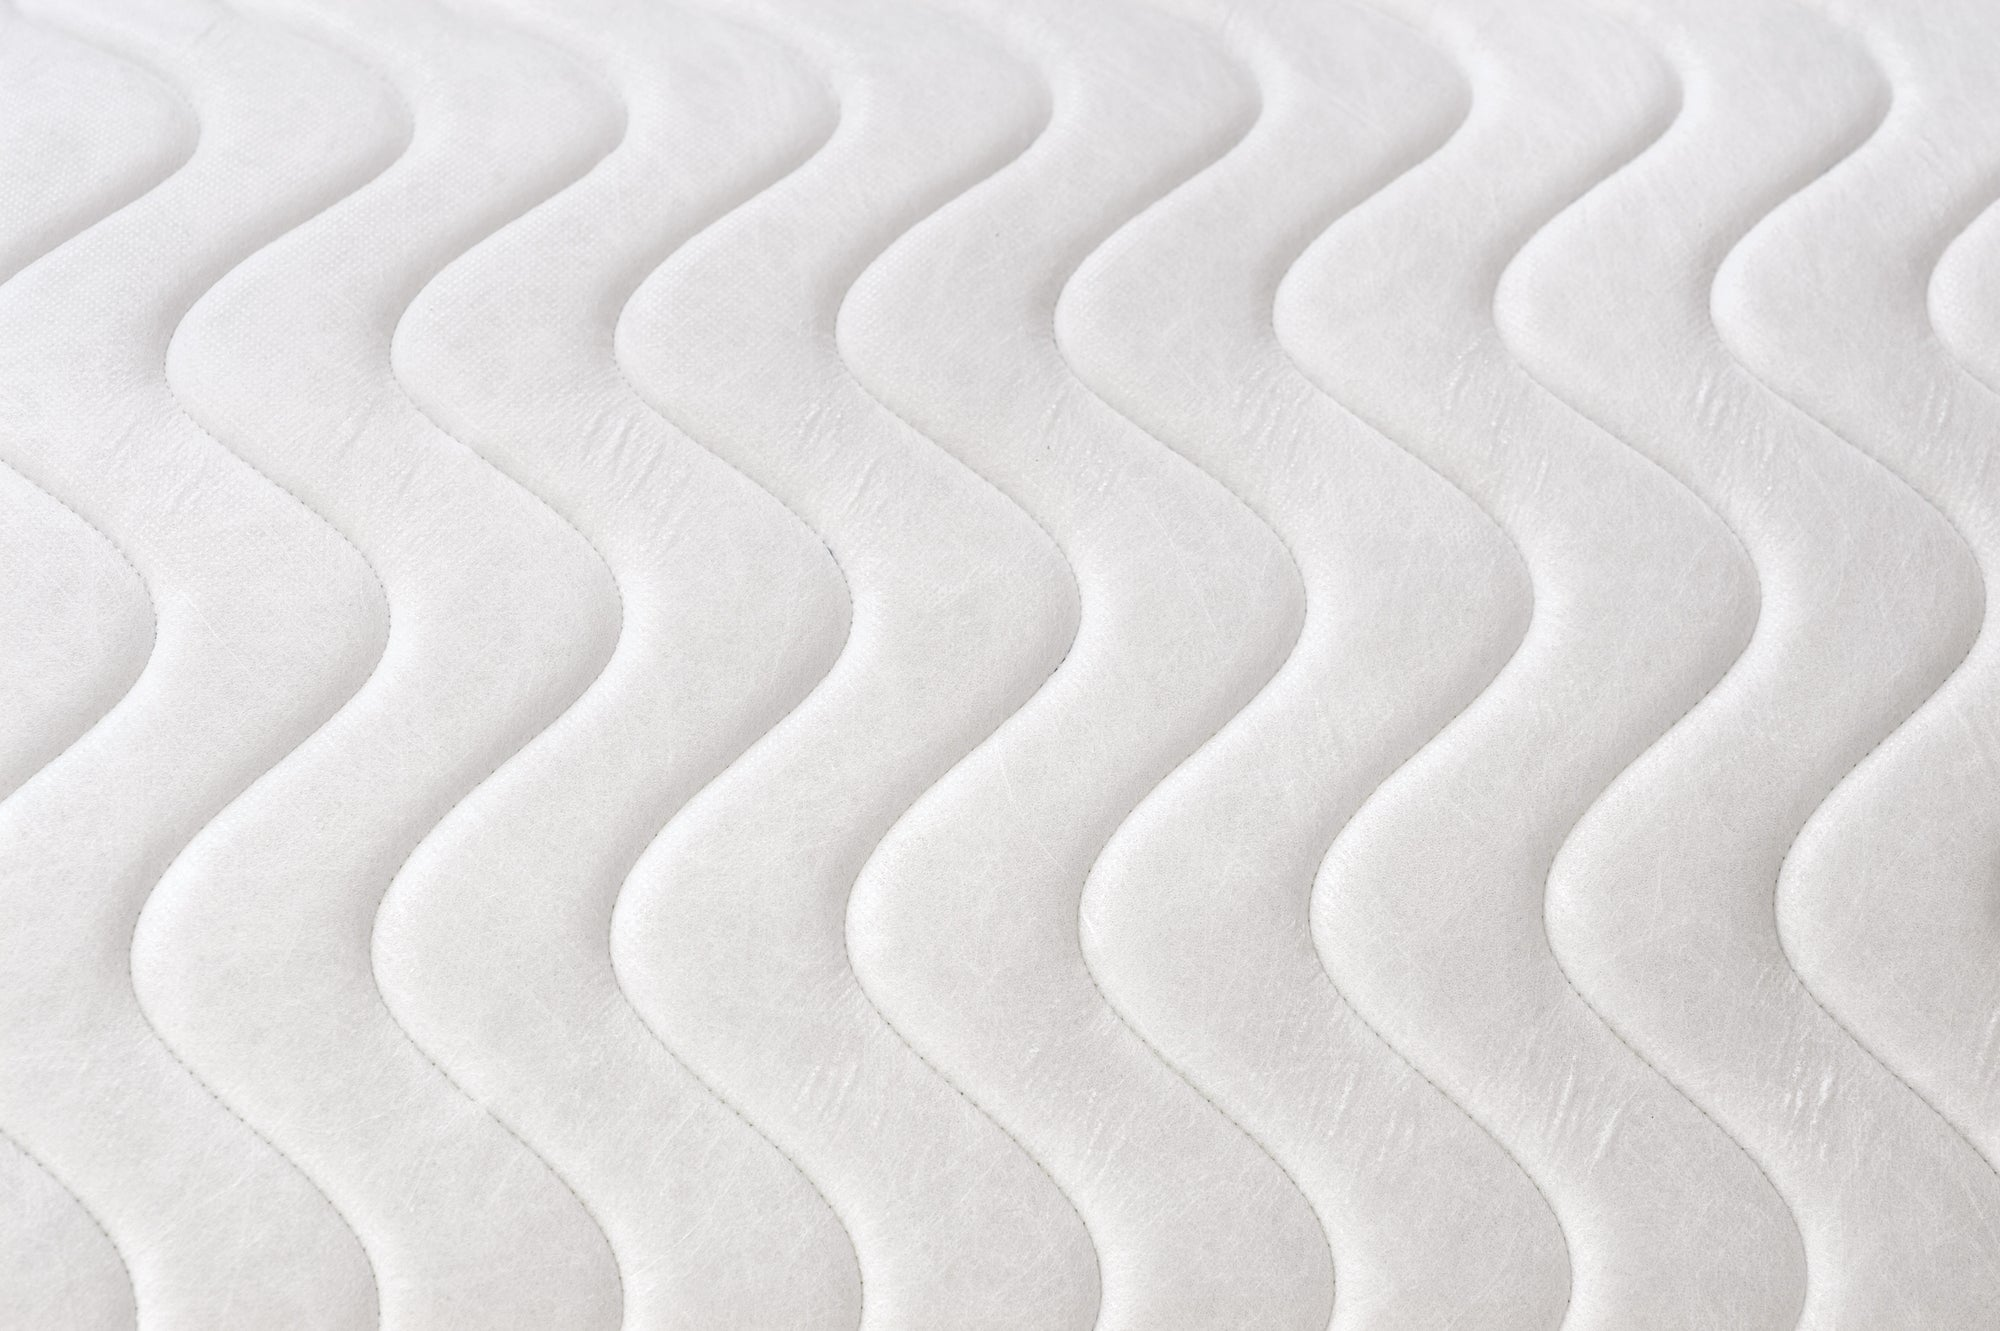 Is A Foam Mattress Better Than A Spring Mattress?